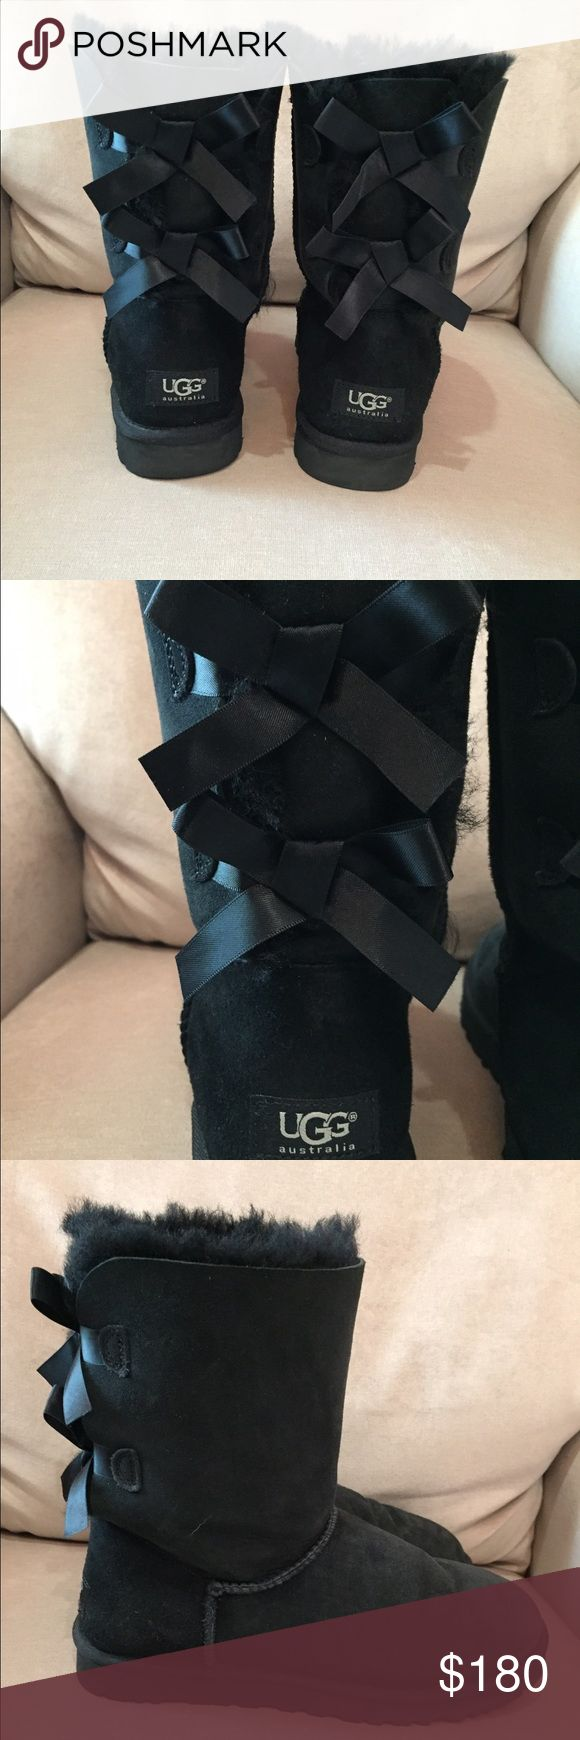 Ugg Bailey Bow Boots Black and only work a few times! Excellent condition! UGG Shoes Winter & Rain Boots